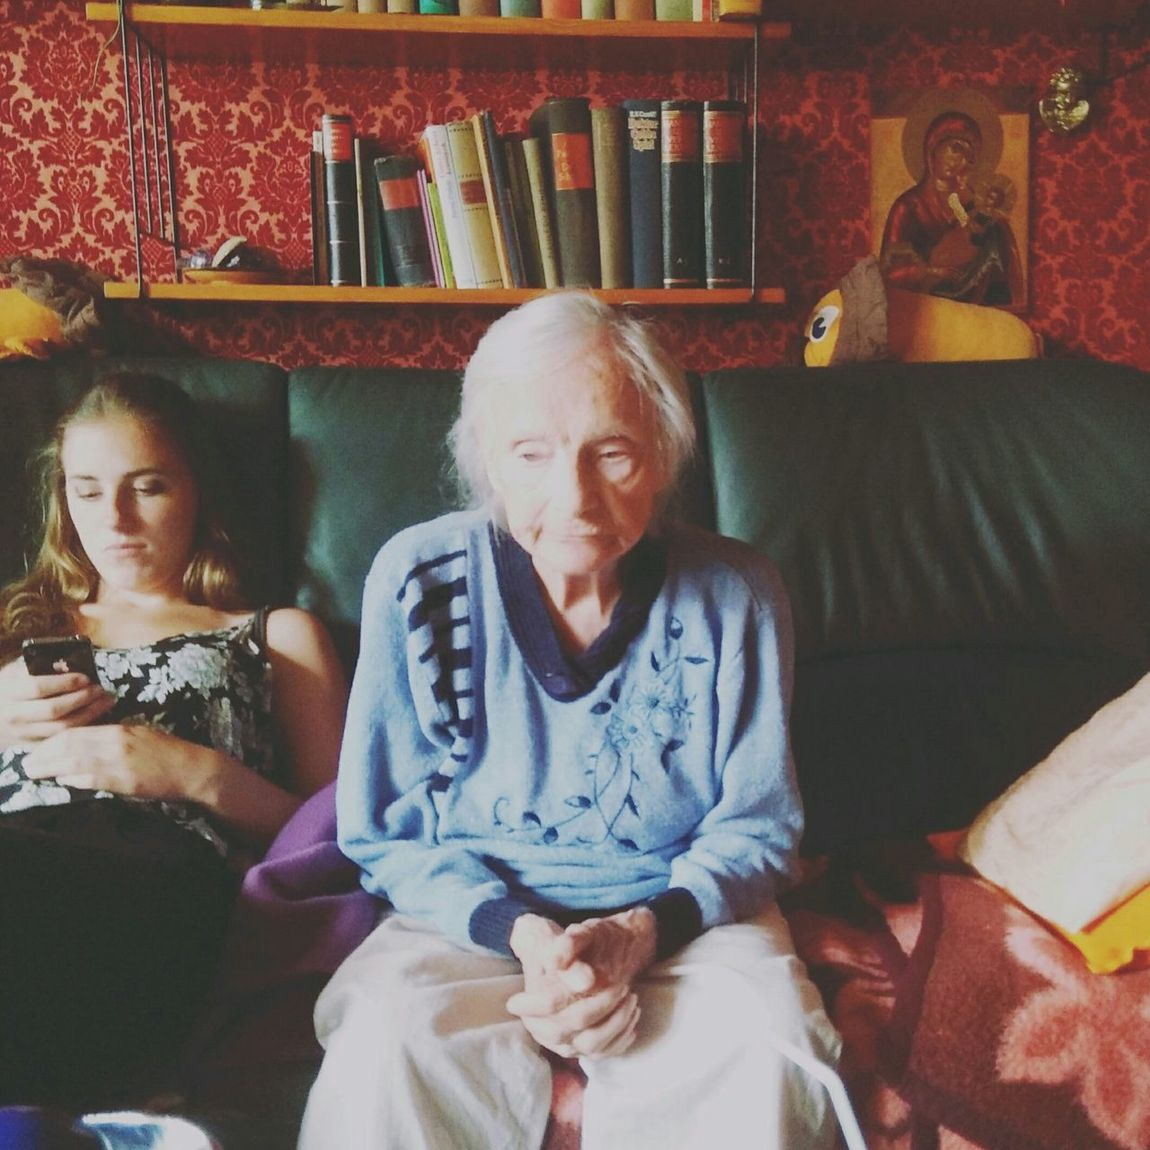 RePicture Growth Youthoftoday Grandma Getting Inspired Taking Photo Humans Socialmediaaddict